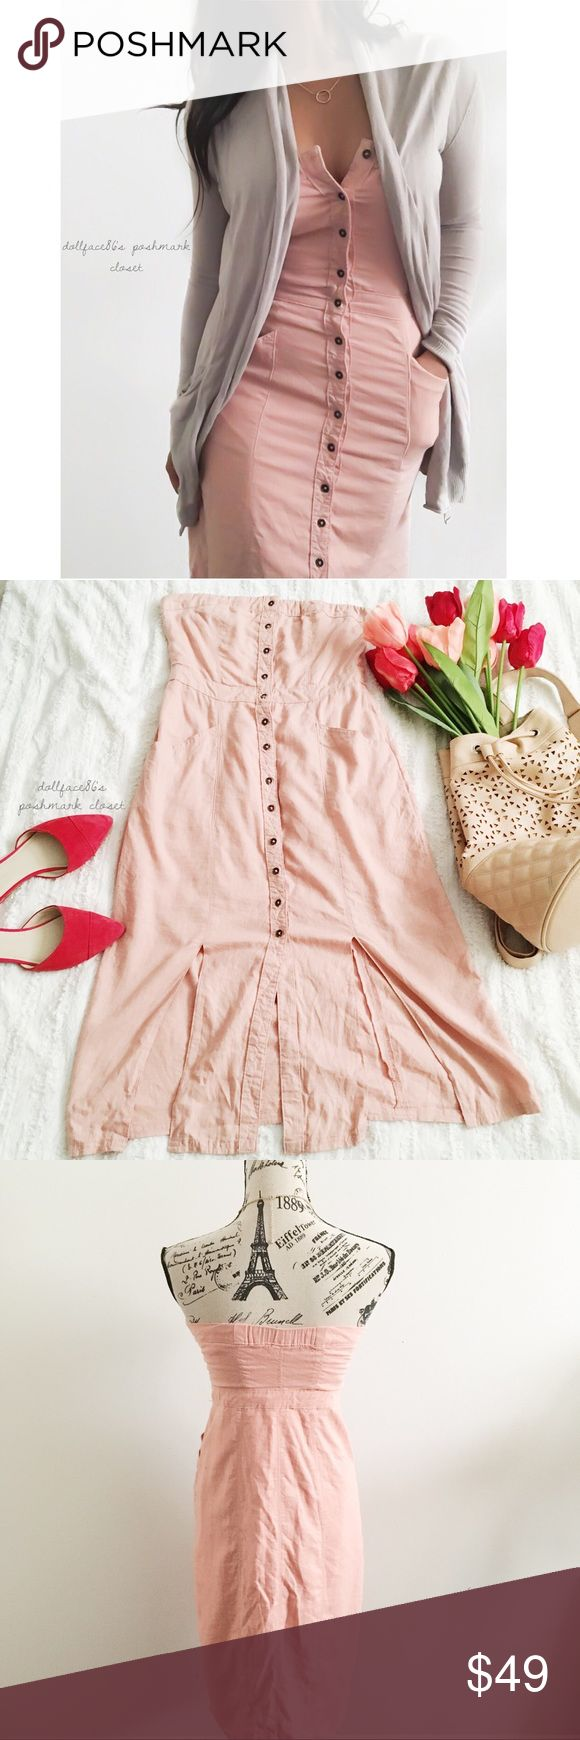 """NWT BDG Pink Button Down Strapless Dress ✦   ✦{I am not a professional photographer, actual color of item may vary ➾slightly from pics}  ❥chest:15.5"""" ❥waist:14"""" ❥length:37"""" front slits:11.5""""  ➳55%linen+45%rayon/rayon lining/machine wash  ➳fit:like a sml in my opinion  ➳condition:new w/tag   ✦20% off bundles of 3/more items ✦No Trades  ✦NO HOLDS ✦No lowball offers/sales are final  ✦‼️BE A RESPONSIBLE BUYER PLS ASK QUESTIONS/USE MEASUREMENTS TO MAKE SURE THIS WILL WORK FOR {YOU} BEFORE…"""